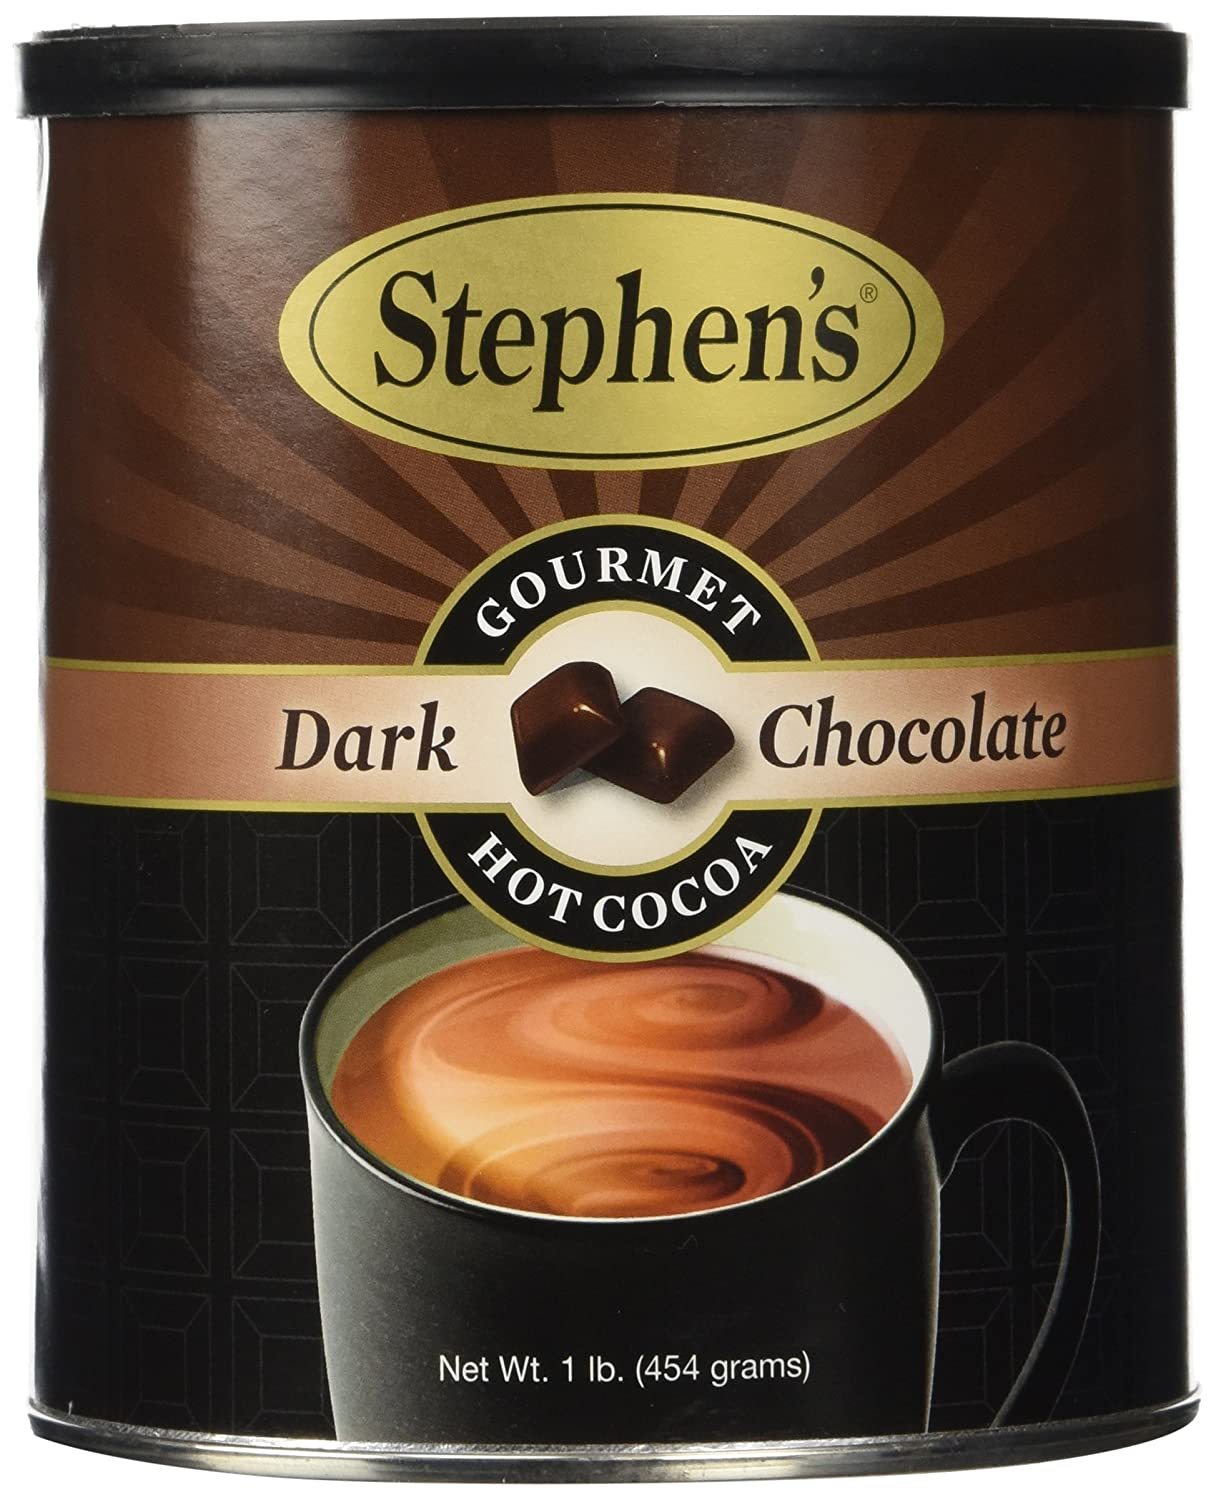 Stephen's Gourmet Hot Cocoa, 16-Ounce Cans (Dark Chocolate, Pack - 1)